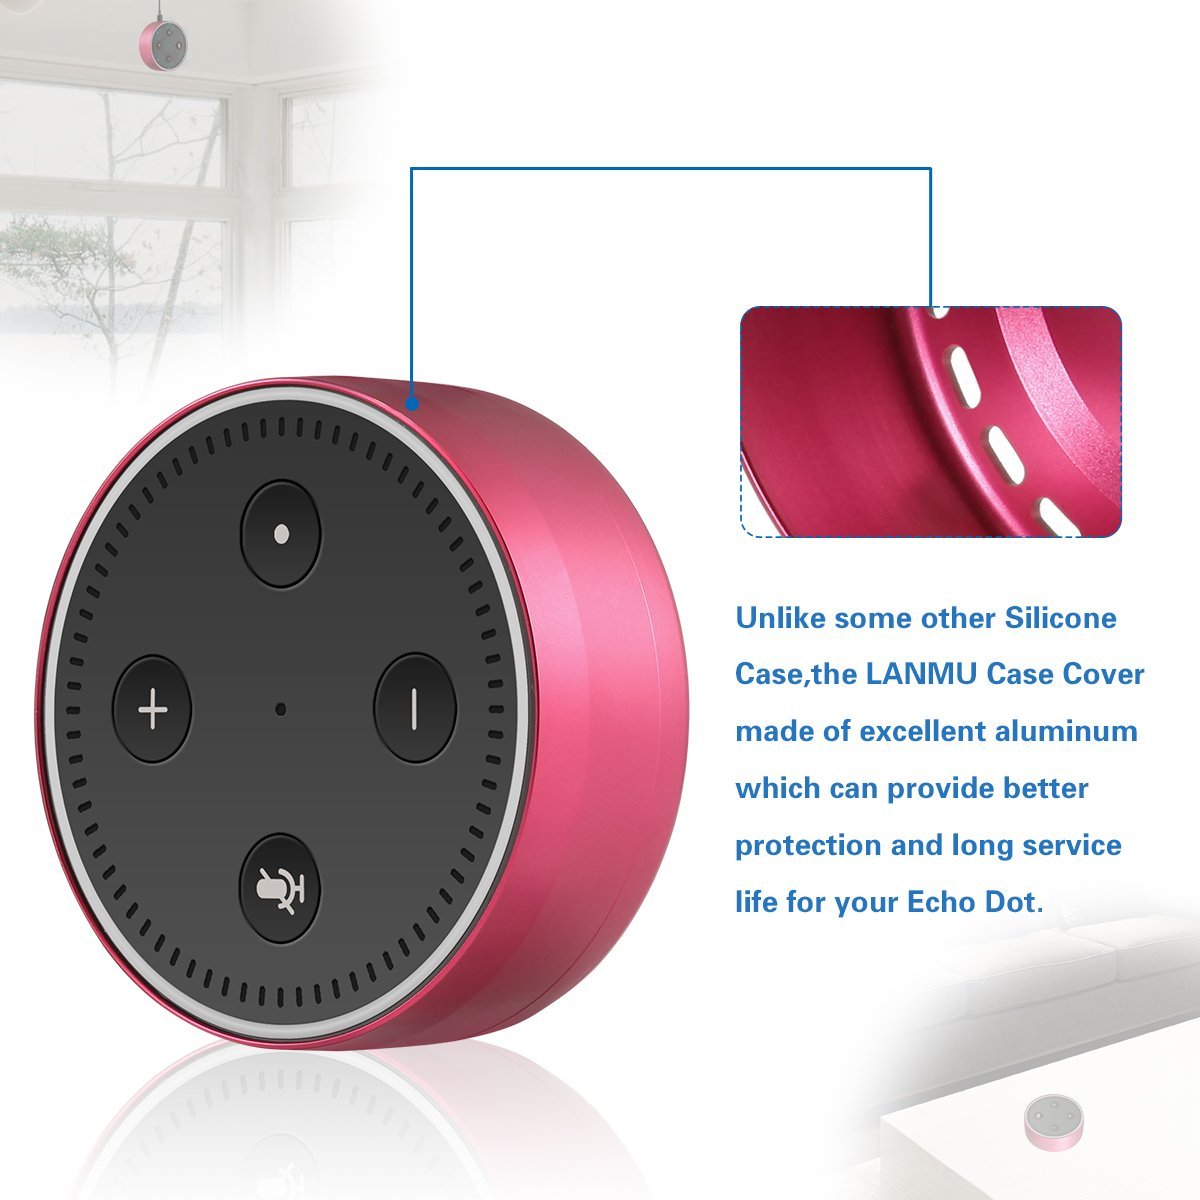 Wall Mount For Echo Dot Lanmu Aluminum Speaker Holder Case